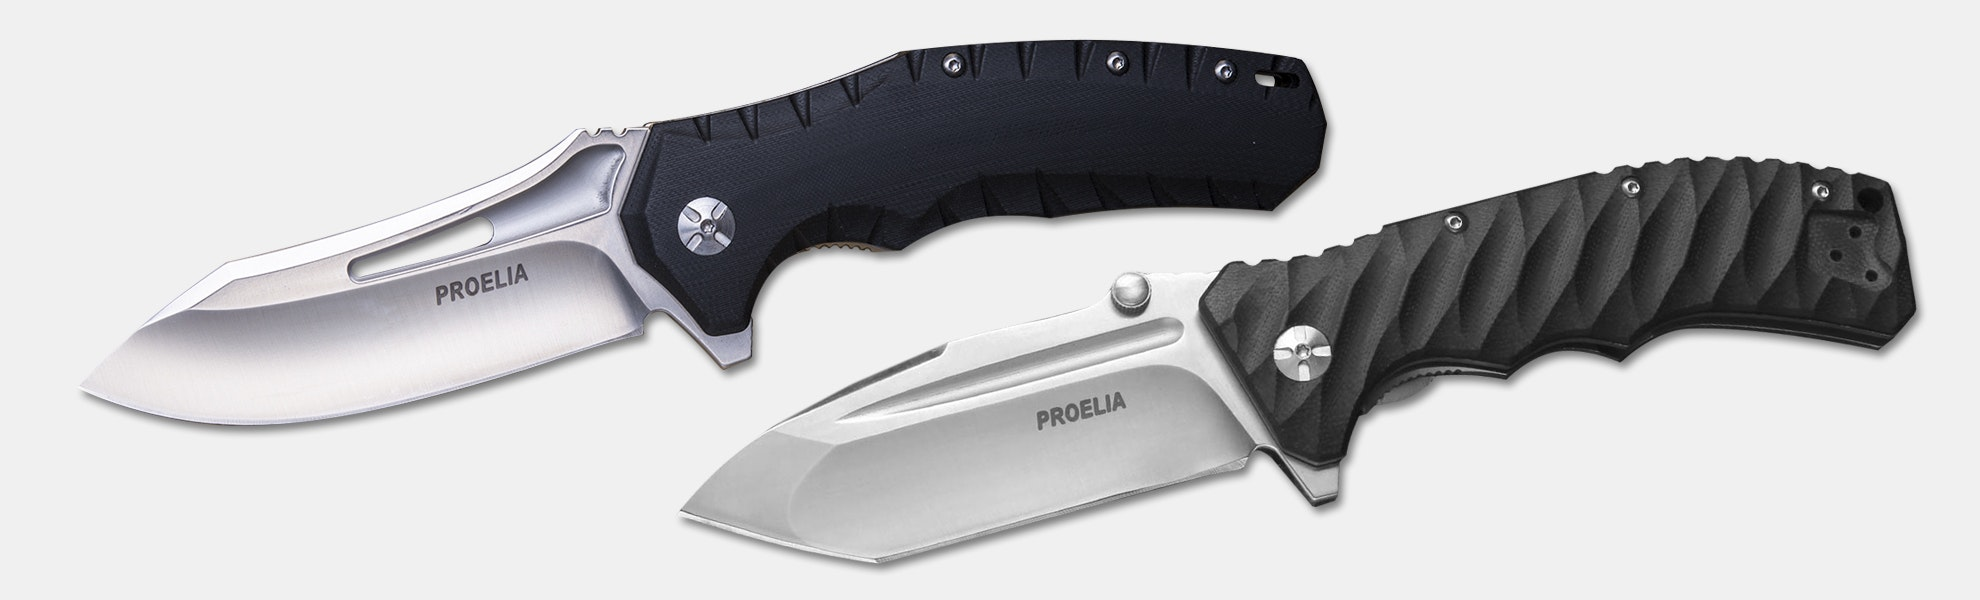 Proelia Knives Tactical Folders (Drop or Tanto)